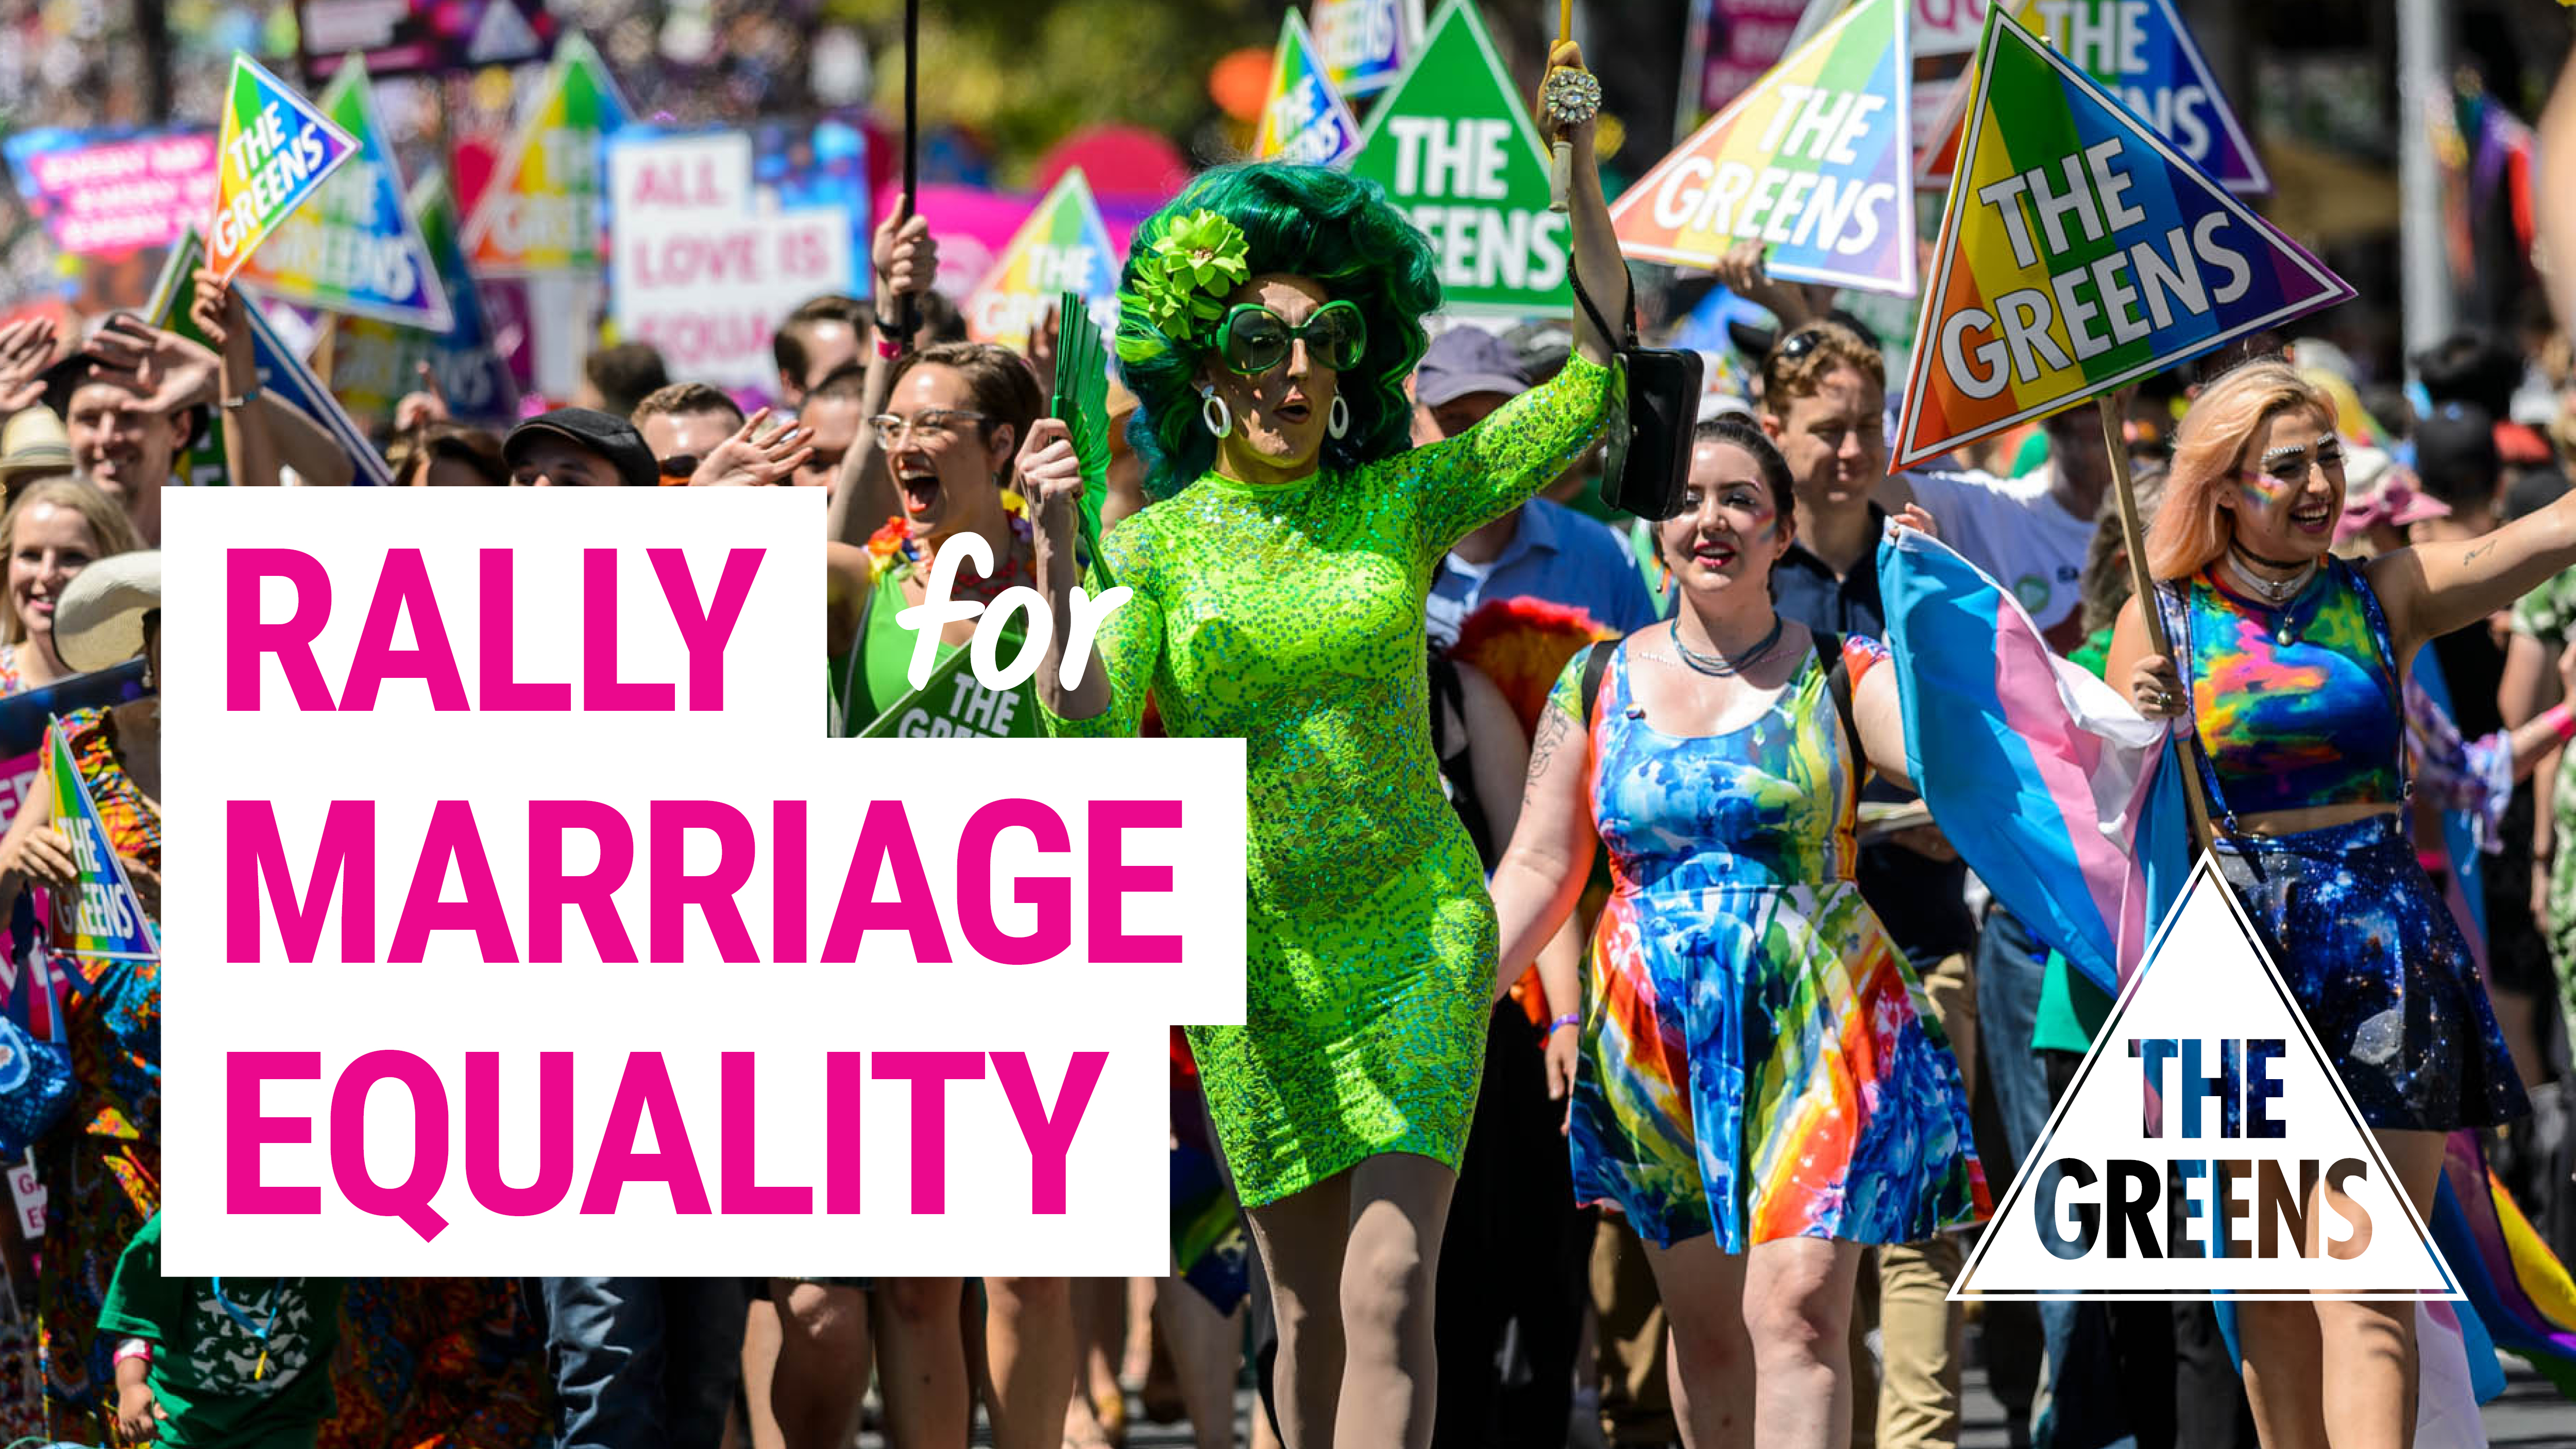 Rally for marriage equality image